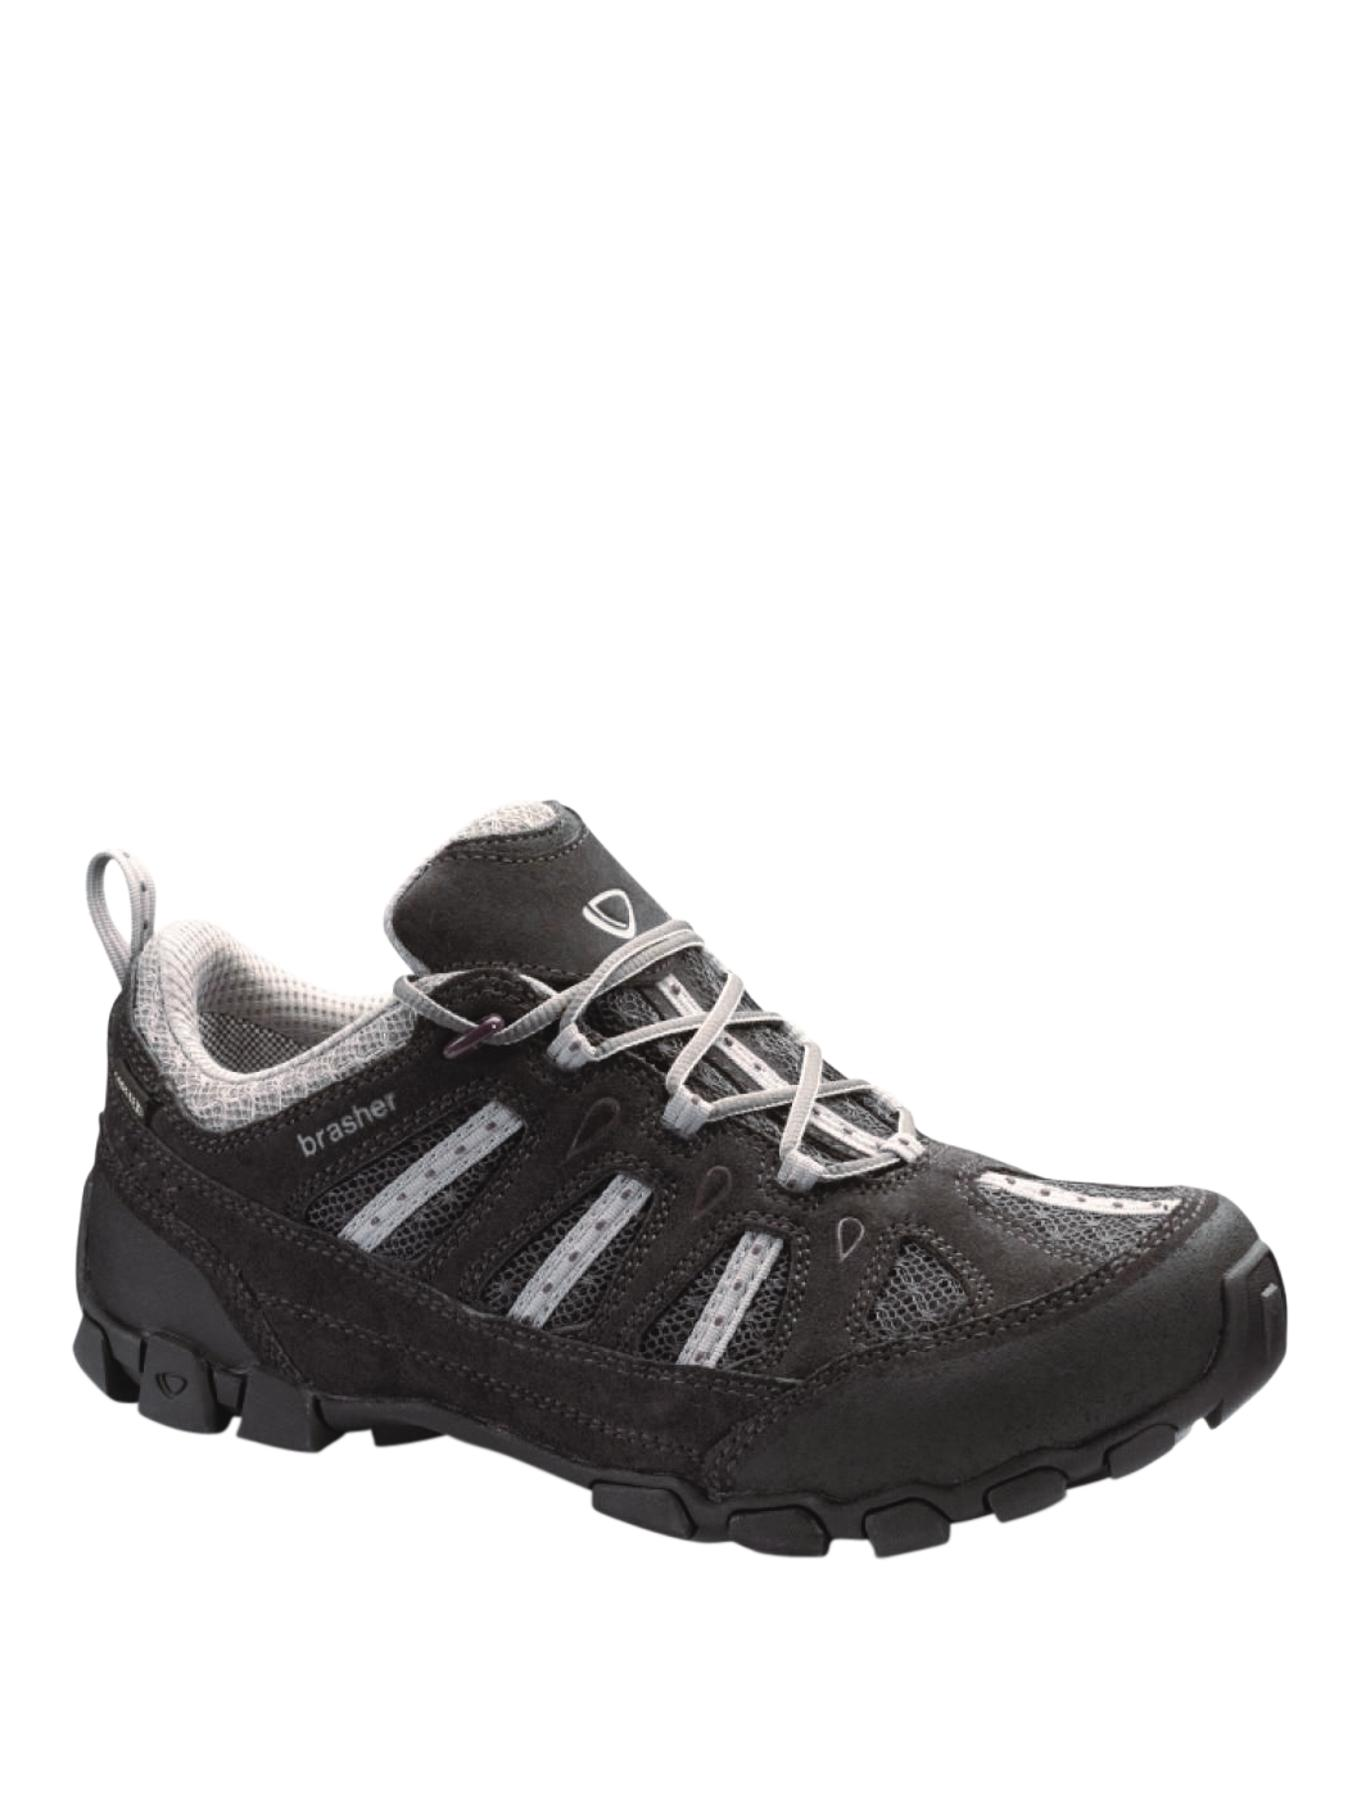 Roam GTX Ladies Travel Shoes, Black